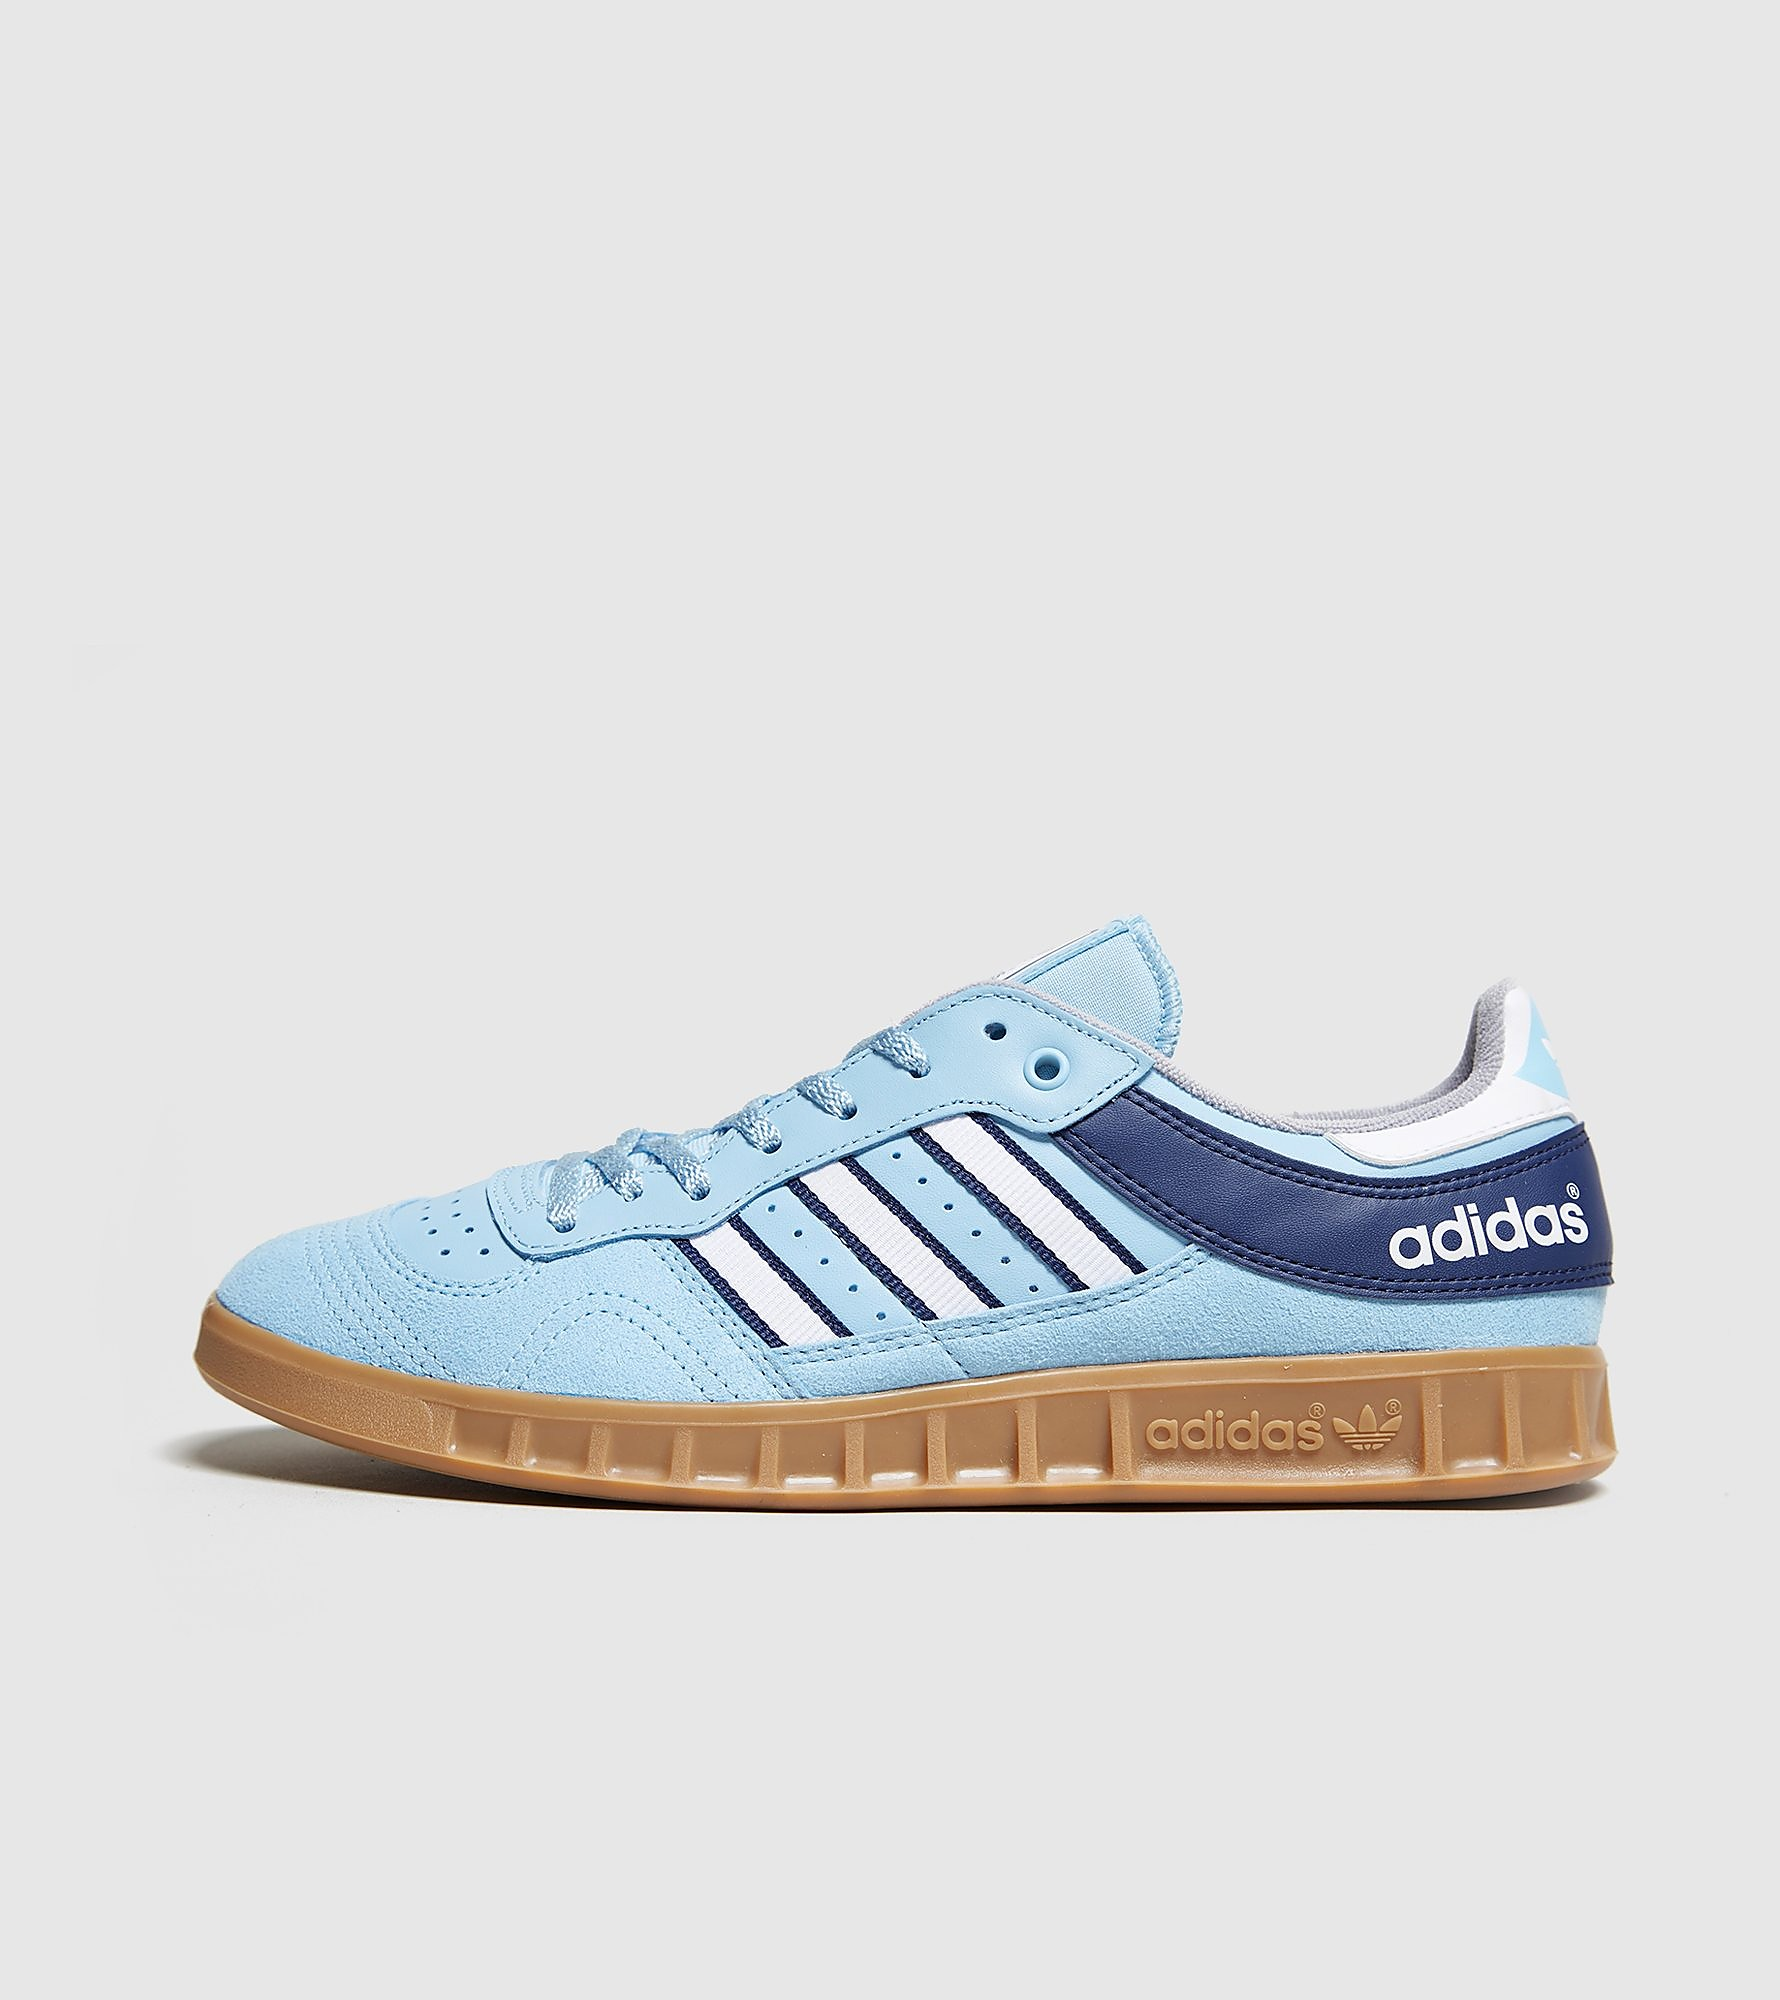 adidas Originals Handball Top - Exclusivité size?